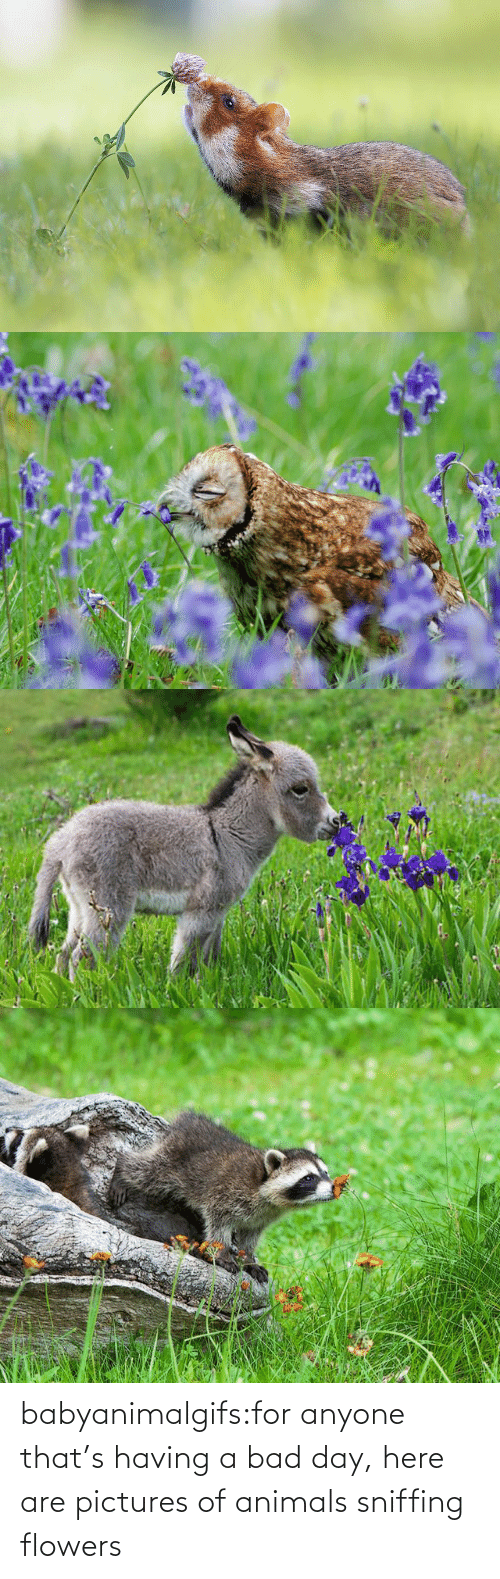 Having A Bad Day: babyanimalgifs:for anyone that's having a bad day, here are pictures of animals sniffing flowers